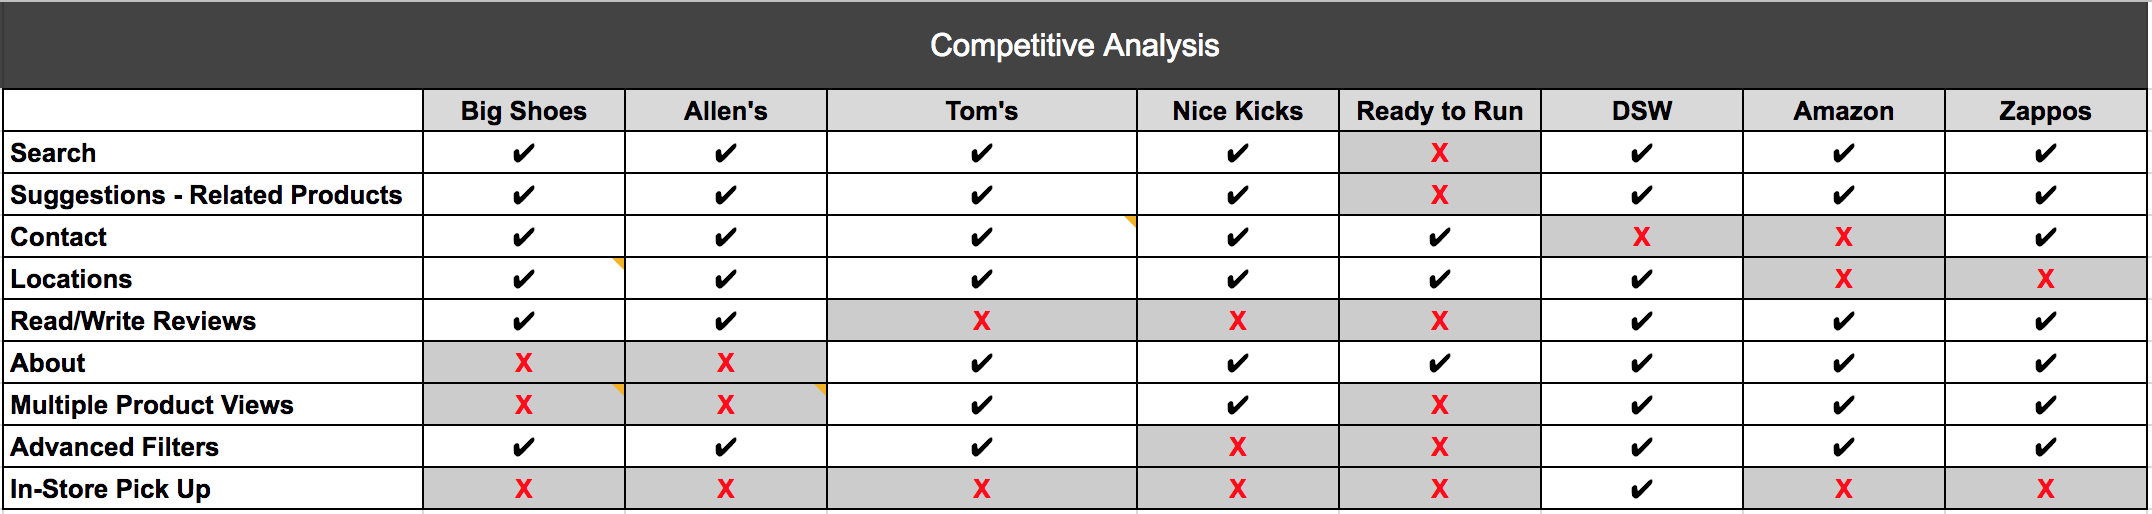 Competitive Analysis UX Design research findings chart for e-commerce site